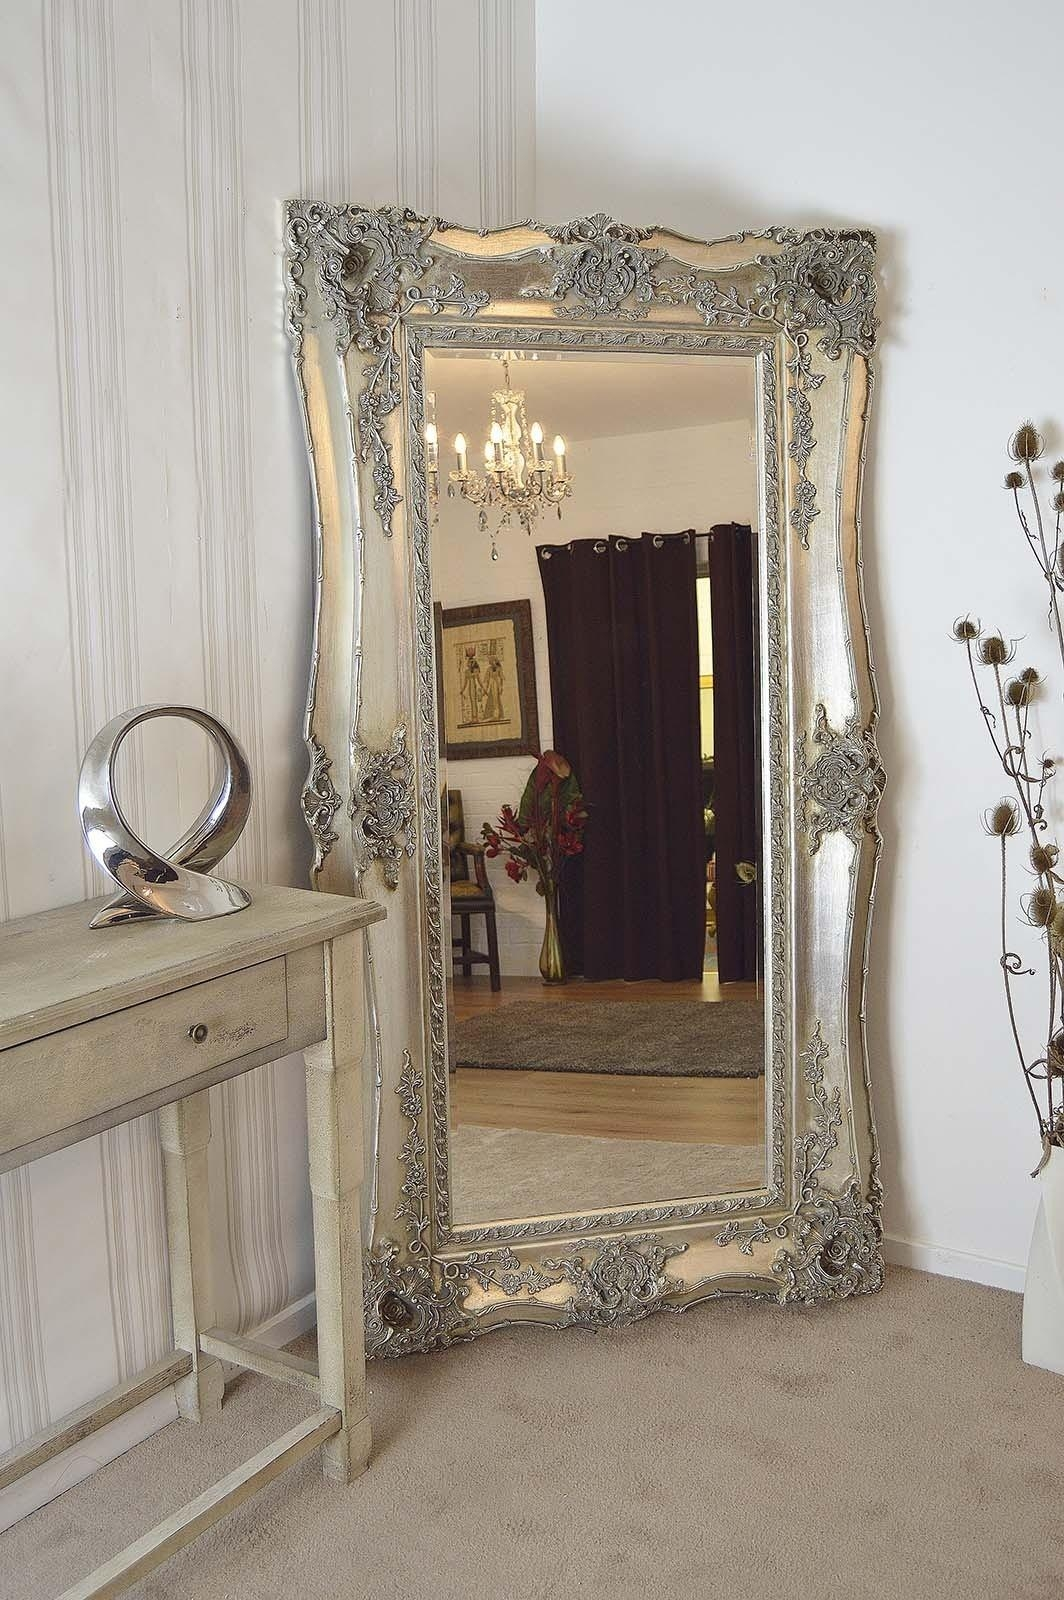 Classic Impression On Antique Wall Mirrors | Vwho Regarding Antique Cream Wall Mirrors (View 3 of 20)